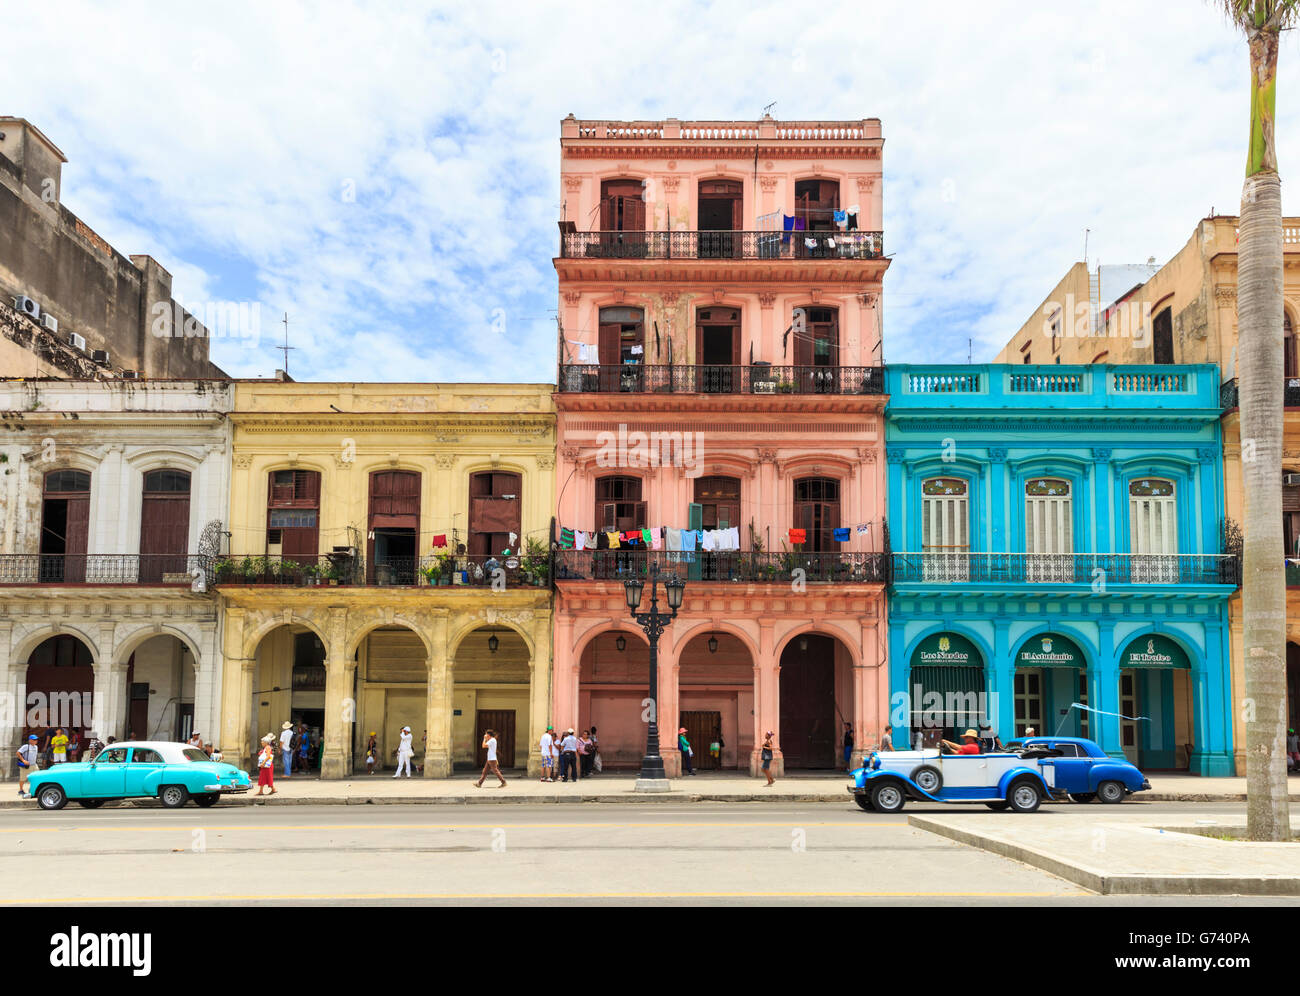 havana street scene classic cars and colorful houses in paseo de stock photo 107653234 alamy. Black Bedroom Furniture Sets. Home Design Ideas